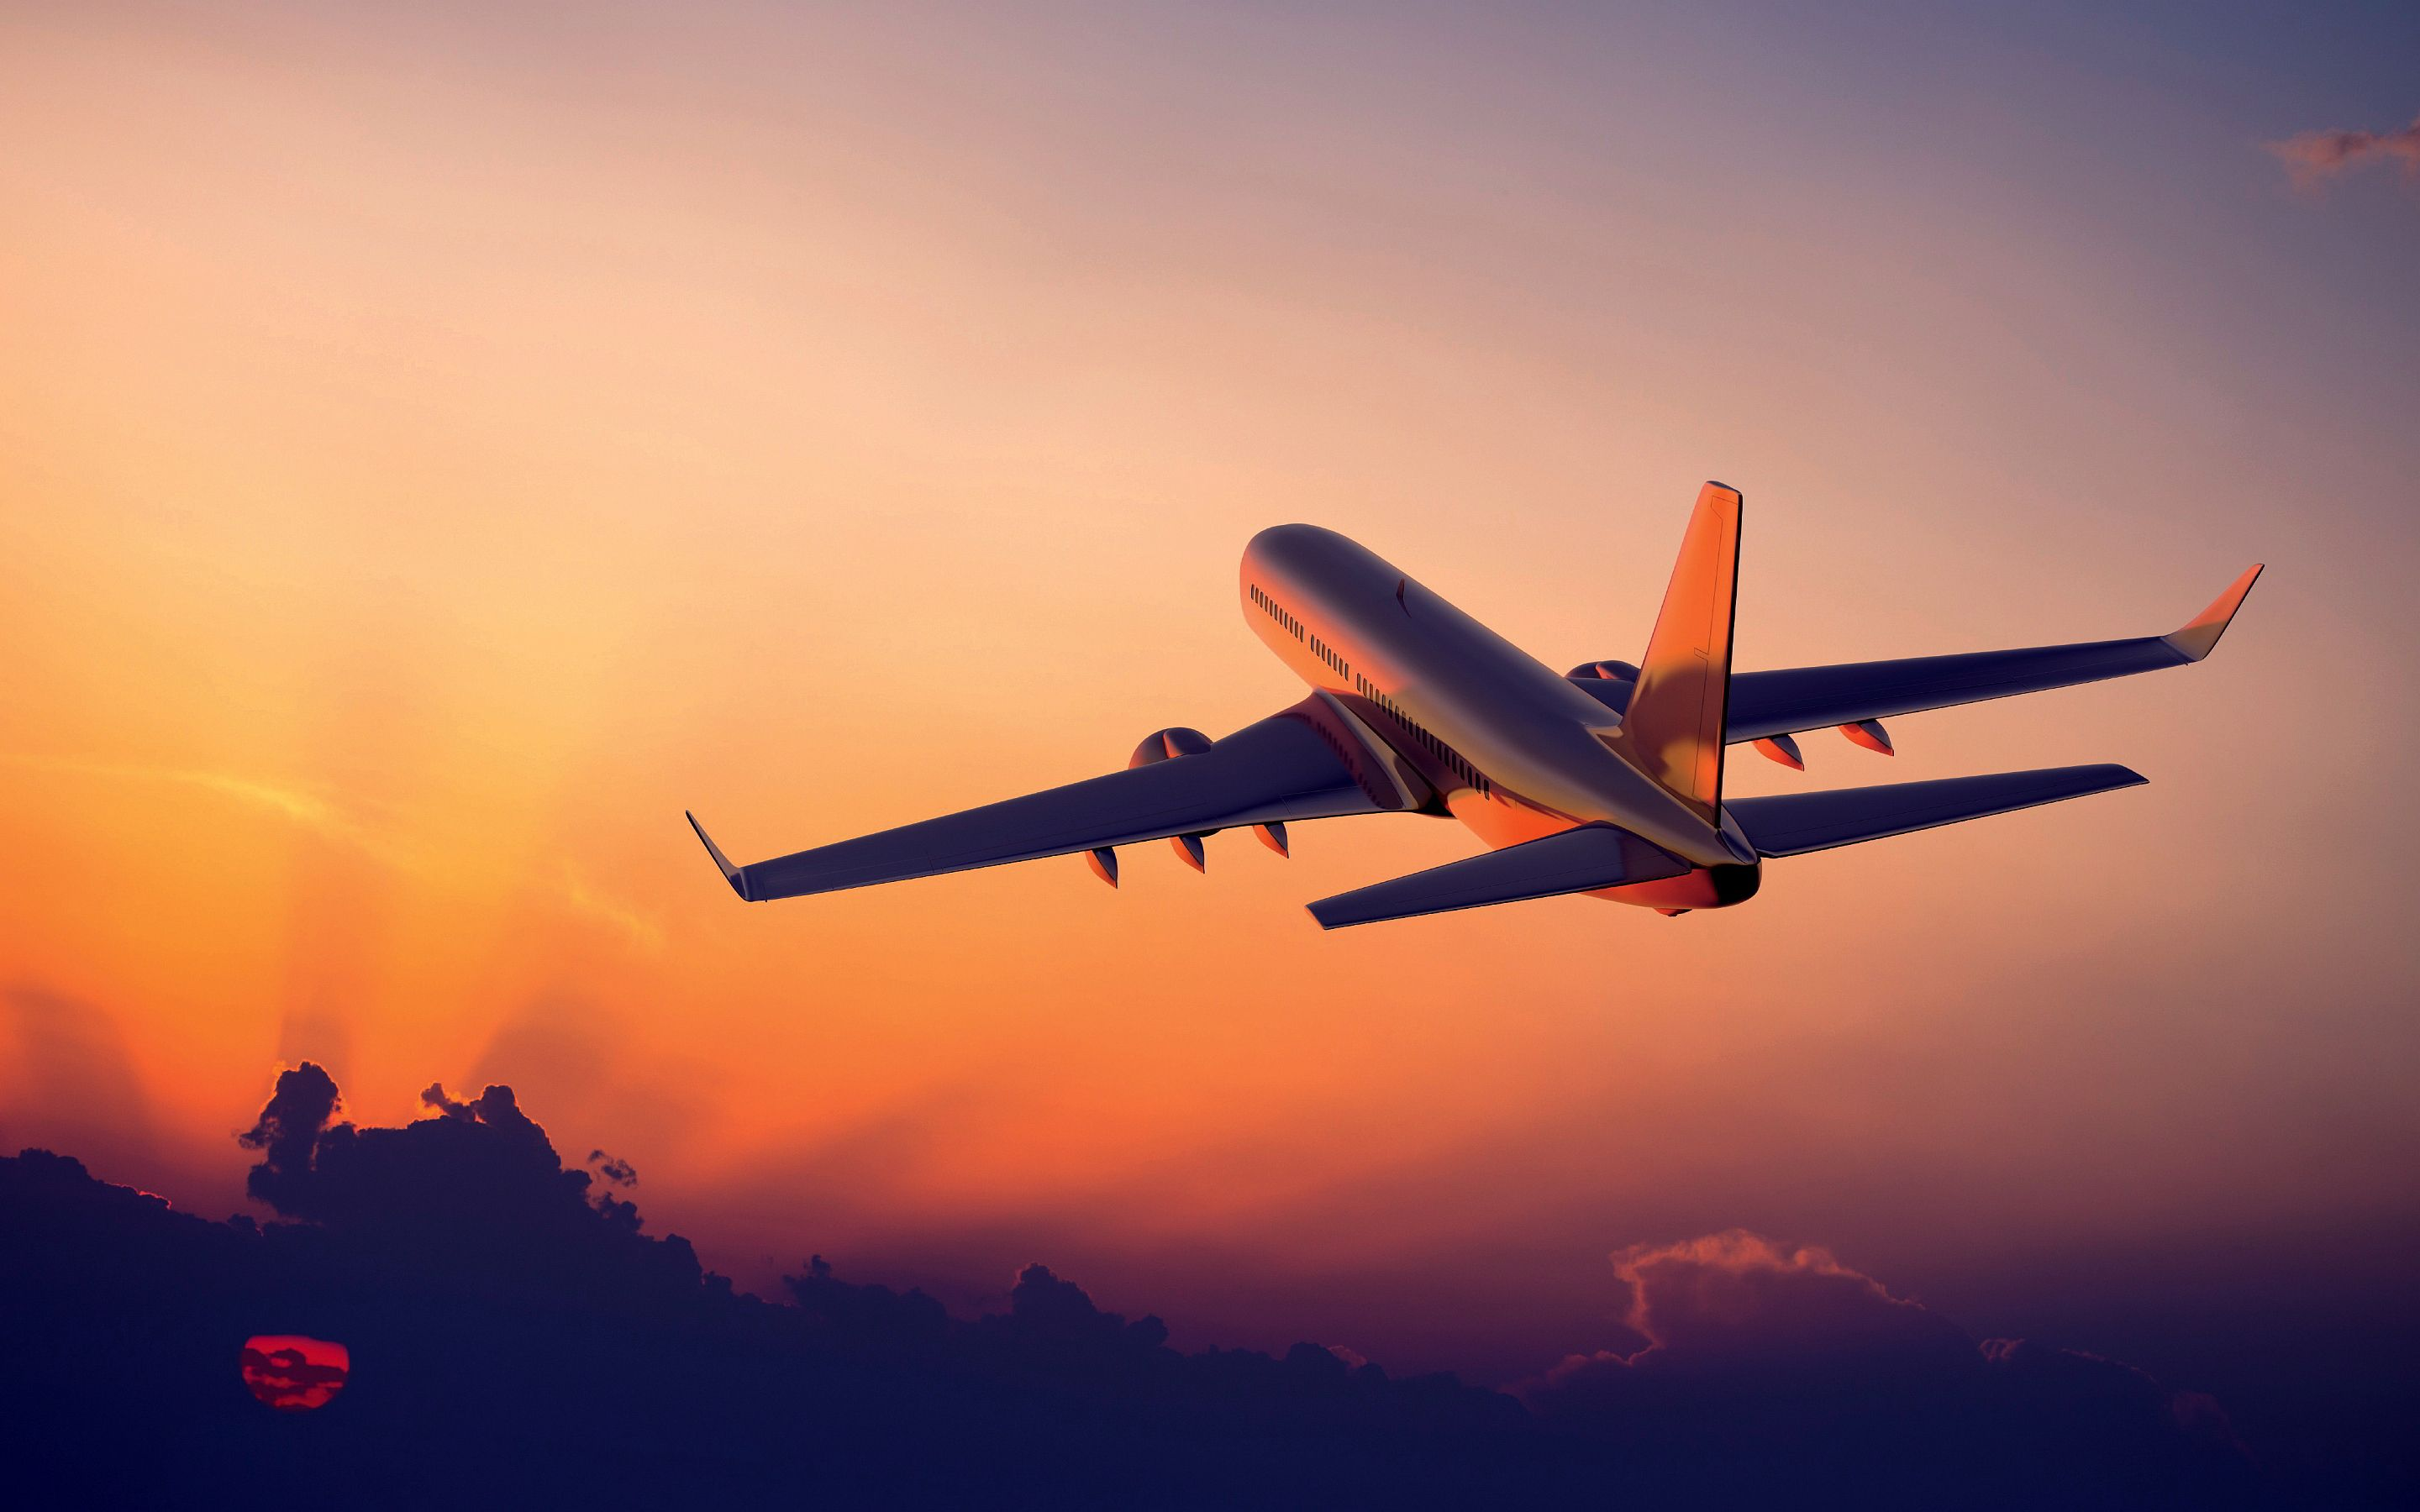 Airplane Flight Sunset Wallpapers Pictures Photos Images